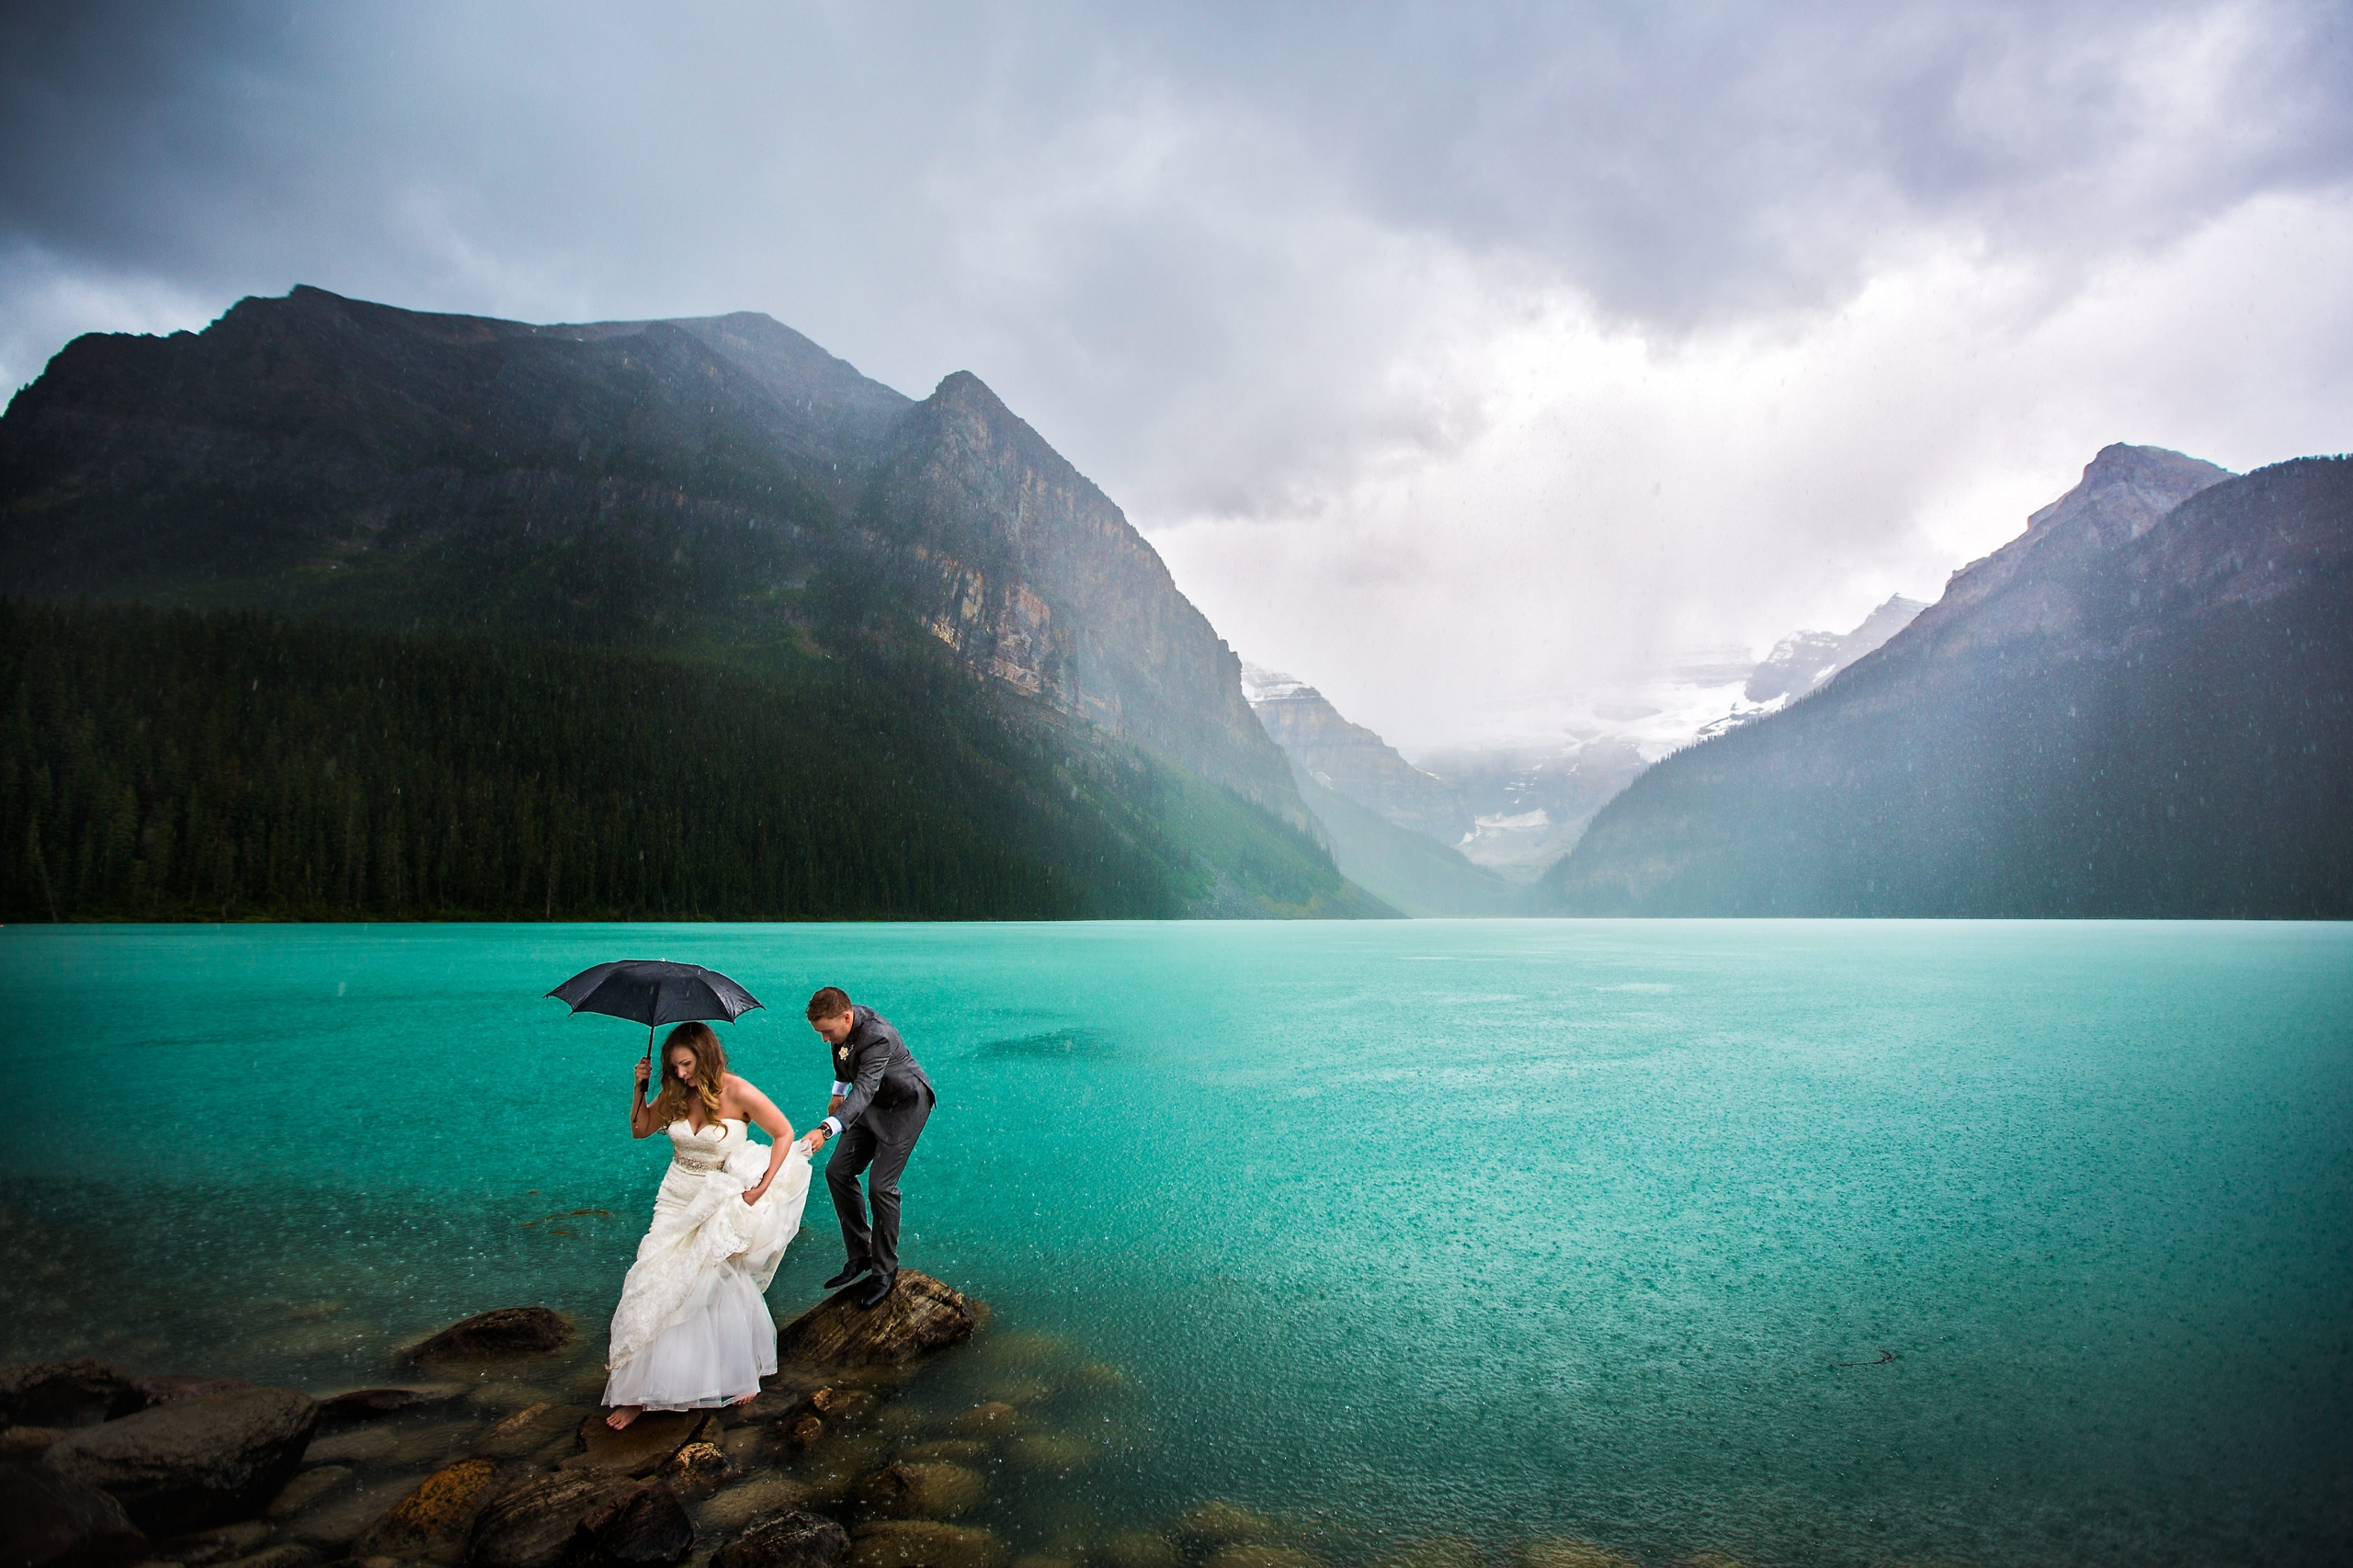 Bride and groom walking across rocks in lake in Canadian Rockies